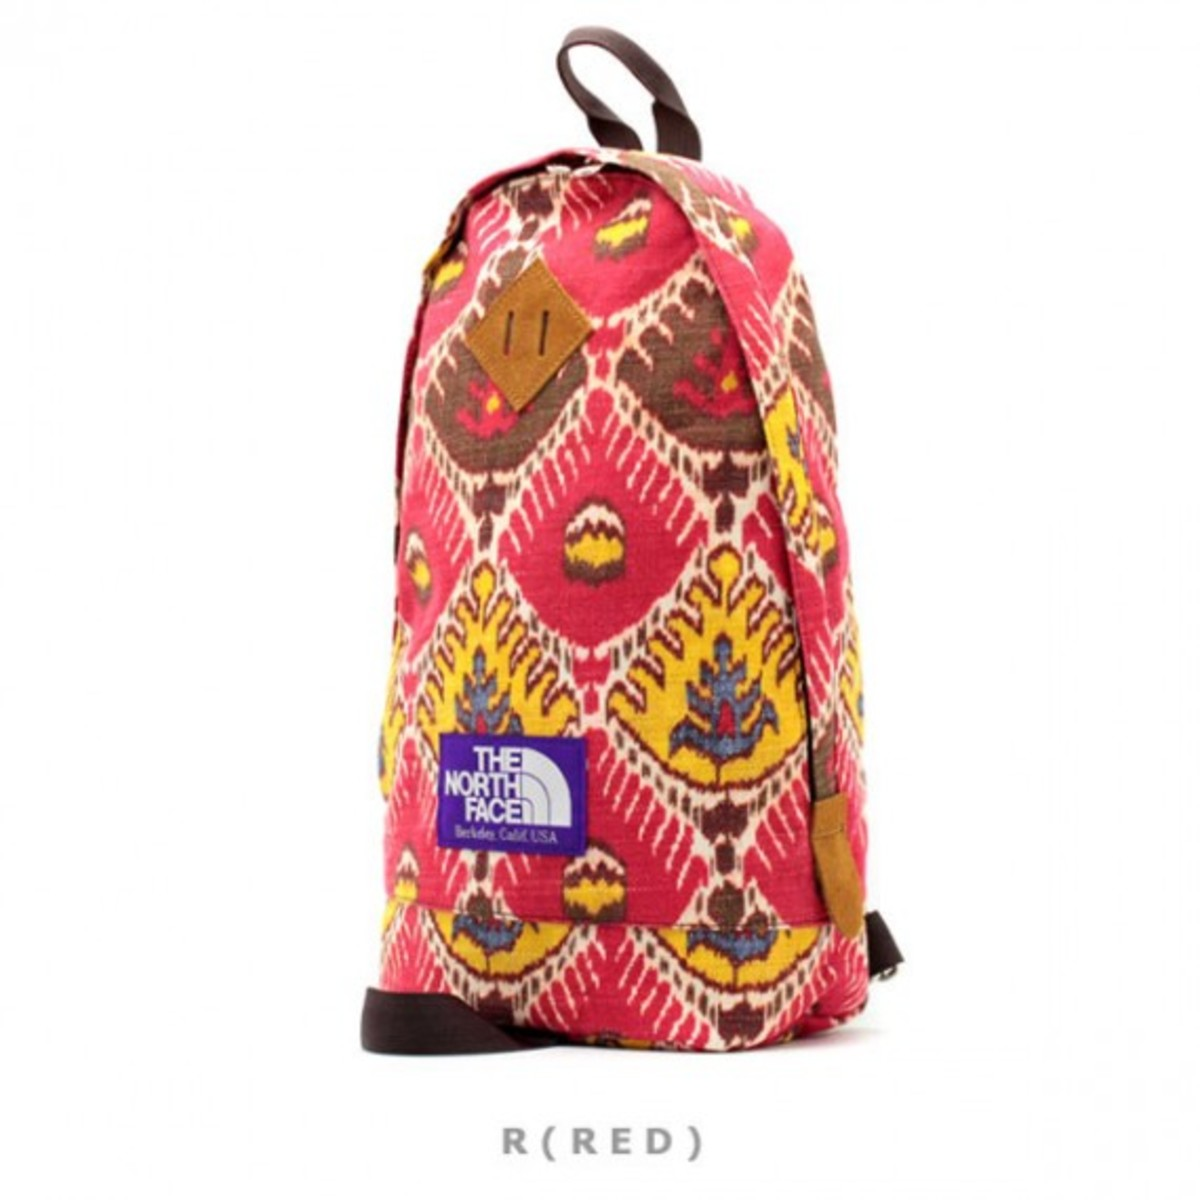 the-north-face-purple-label-fall-2012-bag-collection-16